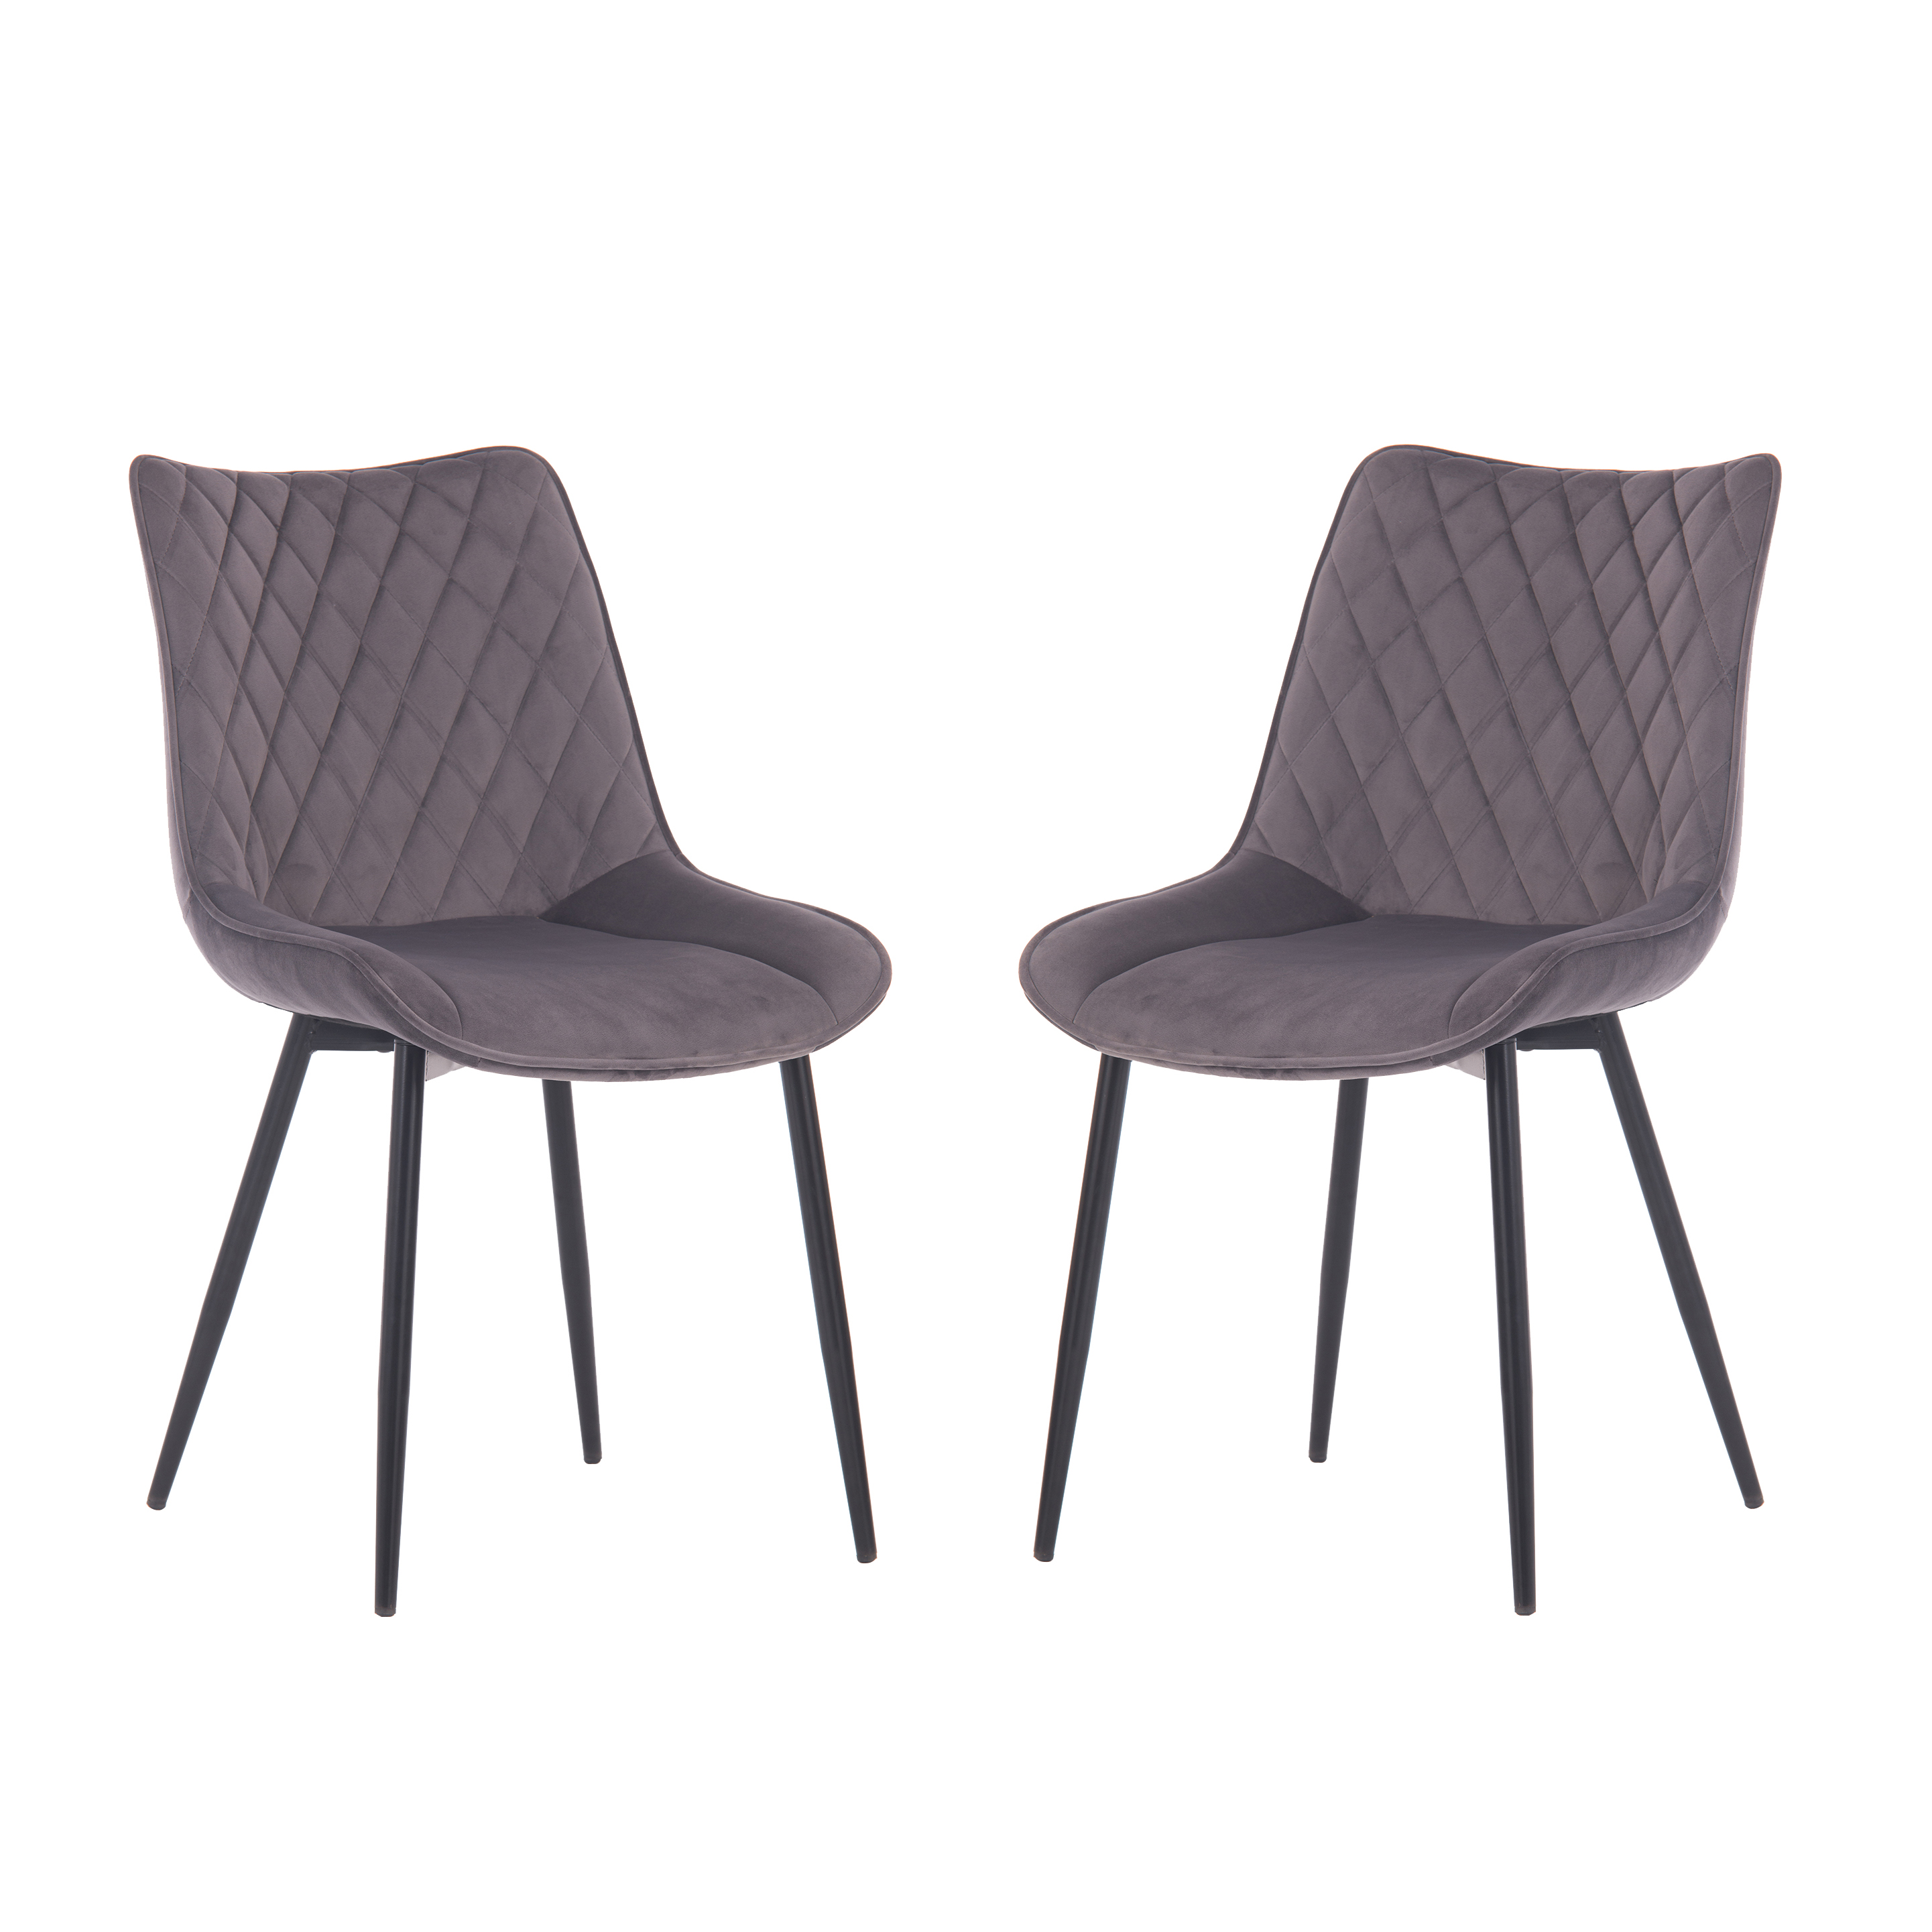 Dining Room Chairs With Cushions 2